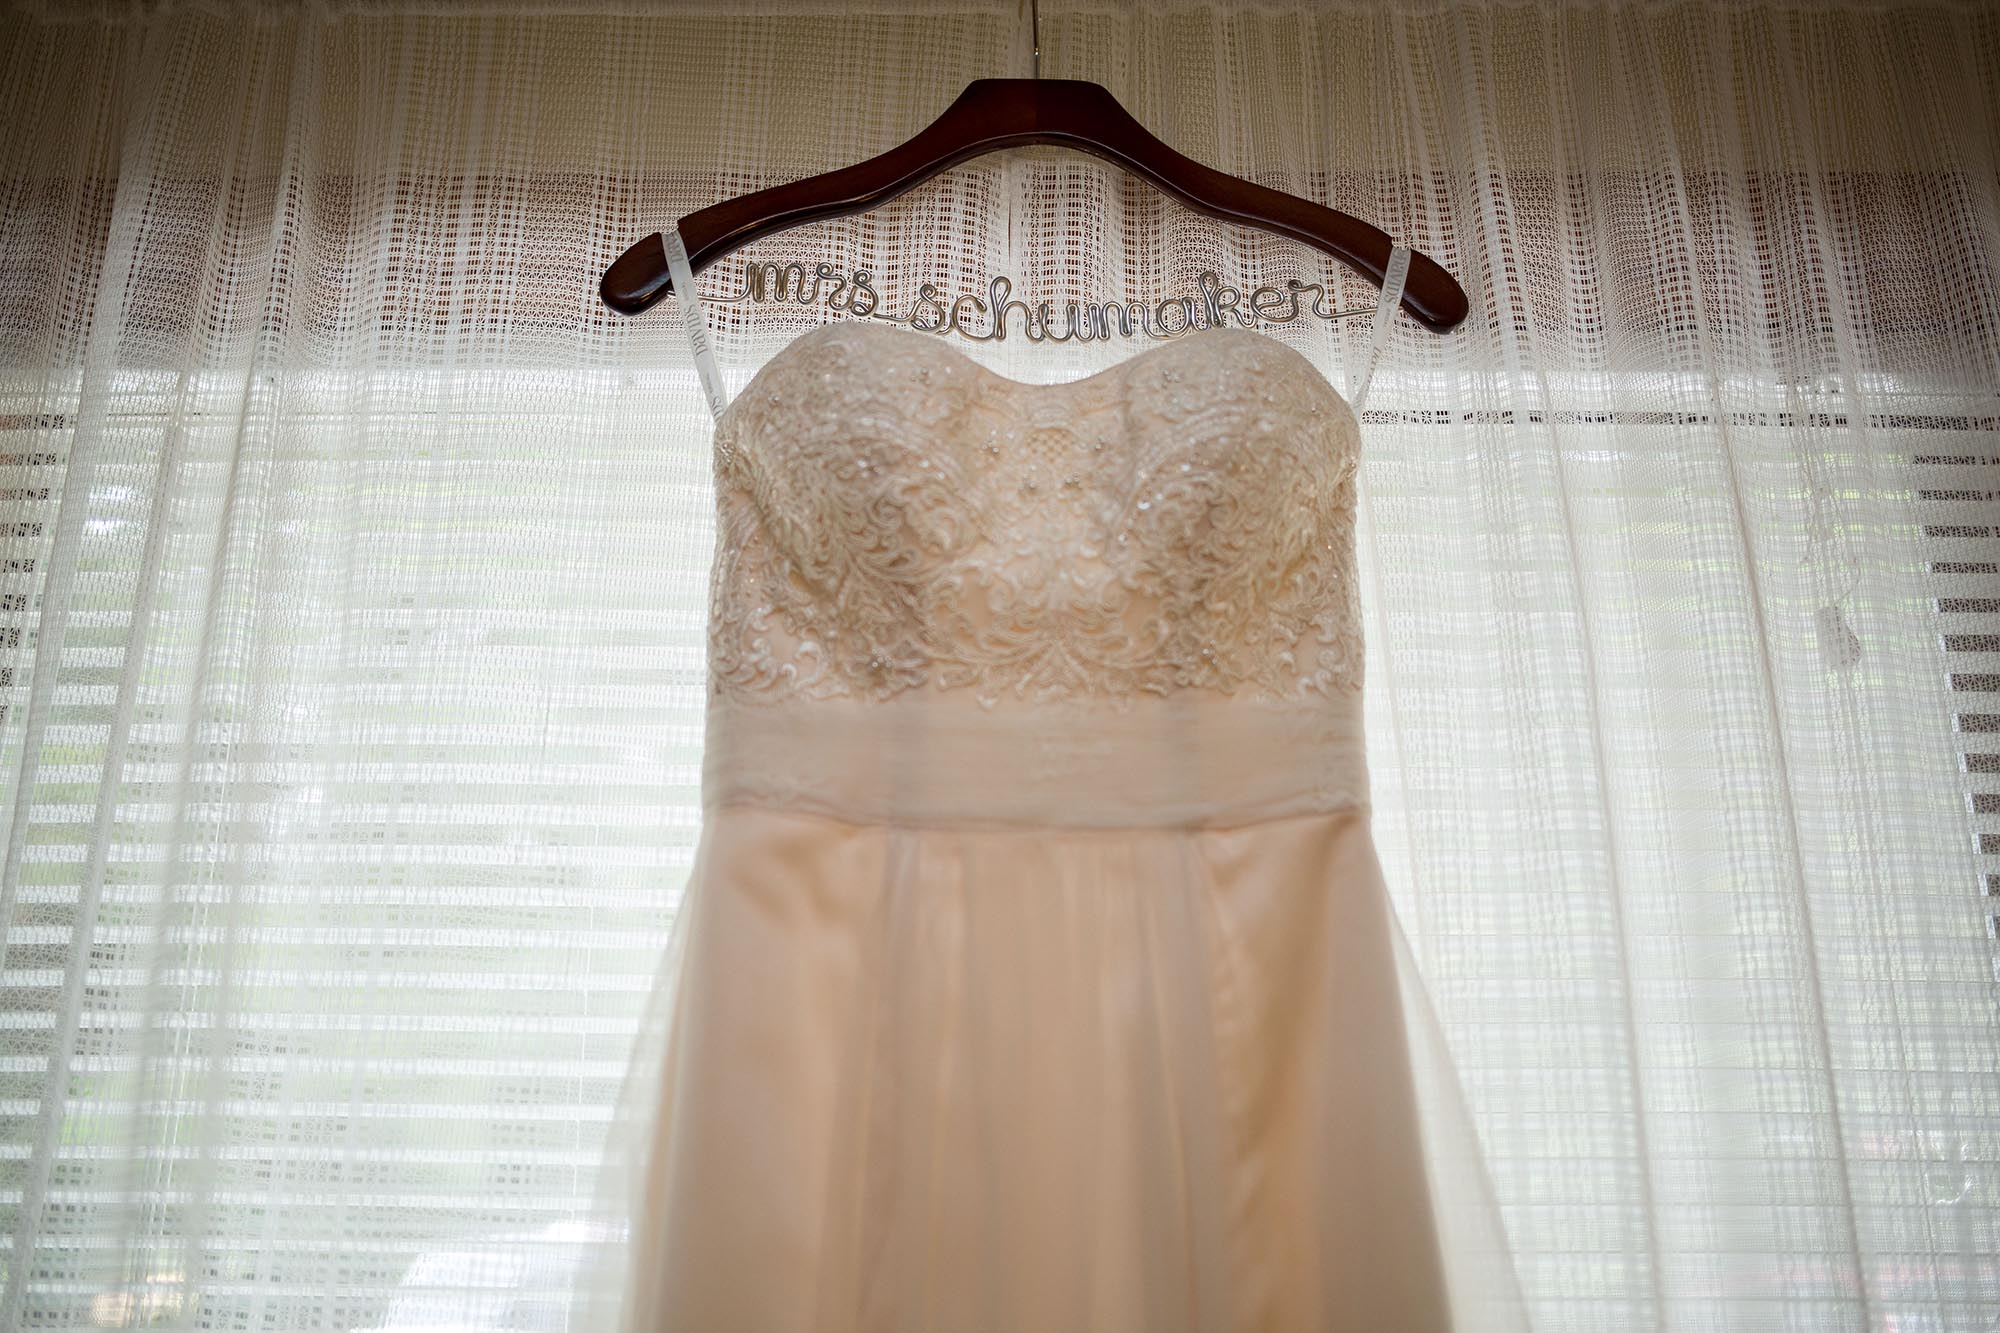 Cute personalized mrs-to-be bridal dress hangers never go out of style.